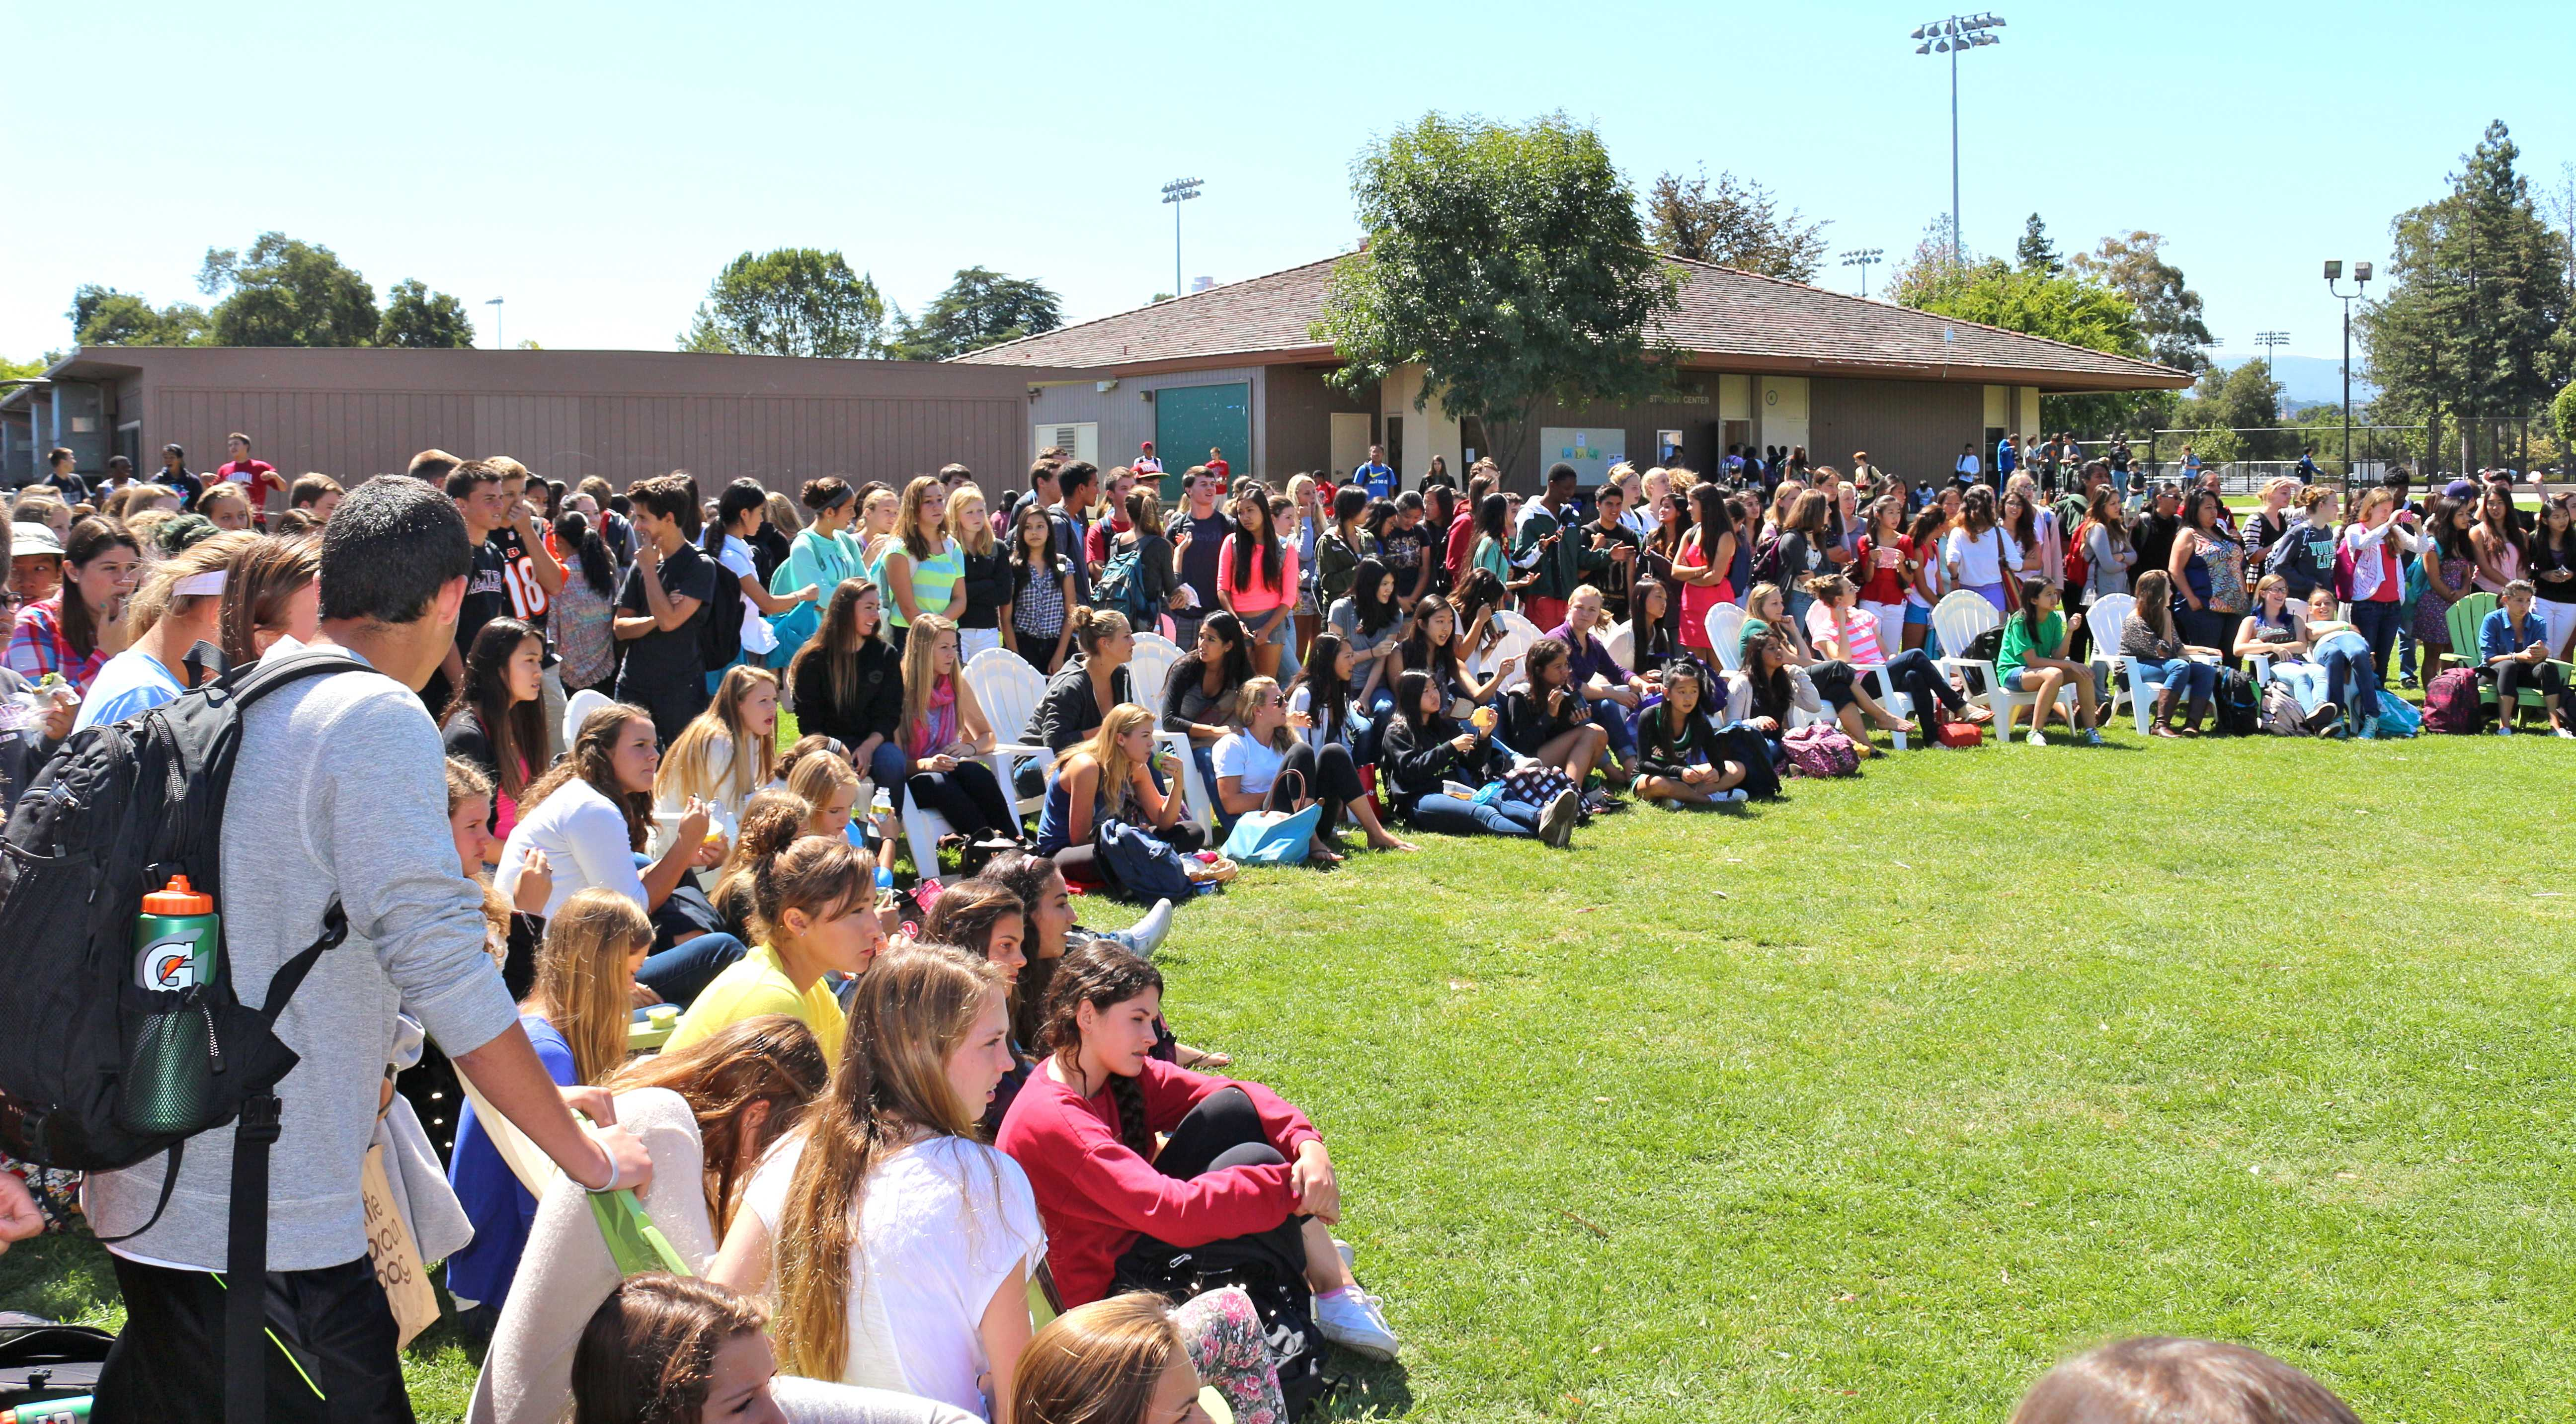 A full array of students gathers to watch the festivities. Photo by Frankie Comey